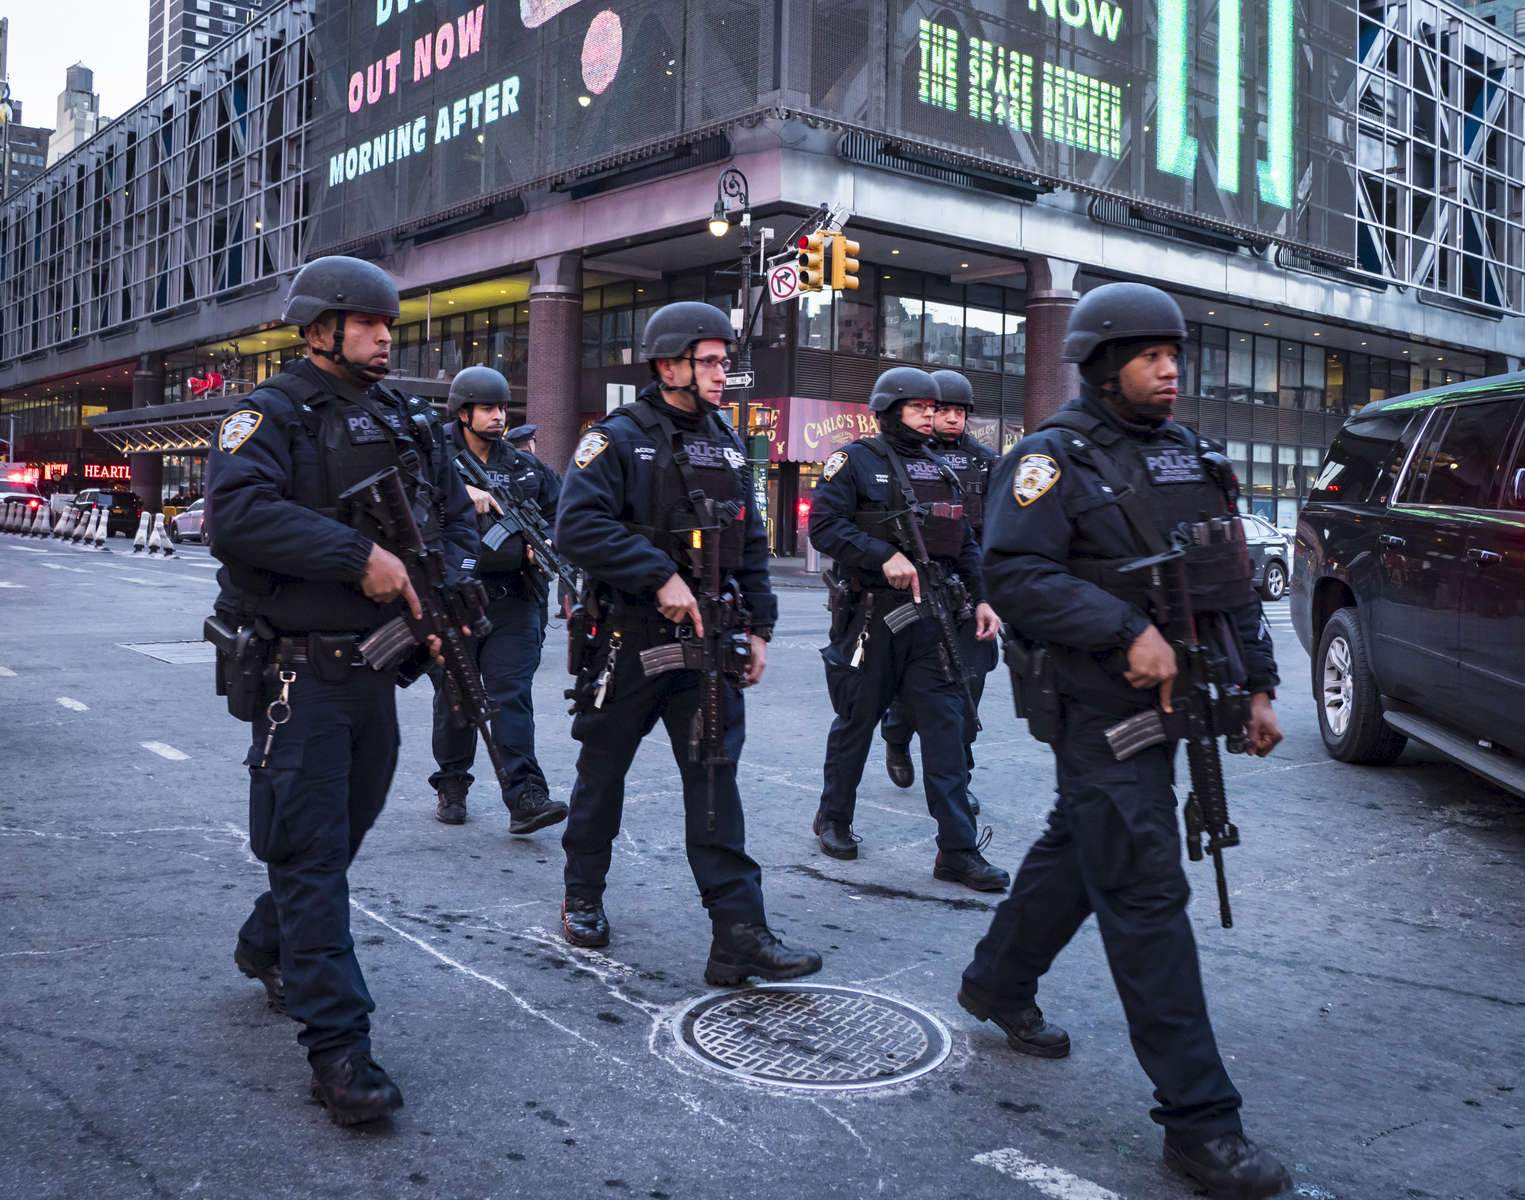 Members of the NYPD responded at the scene where suspected terrorist Akied Ullah, 27, detonated a pipe bomb in a subway passage between Times Square and Port Authority Bus Terminal on 42nd Street between 7th and 8th Avenue in Manhattan on Monday, December 11, 2017.